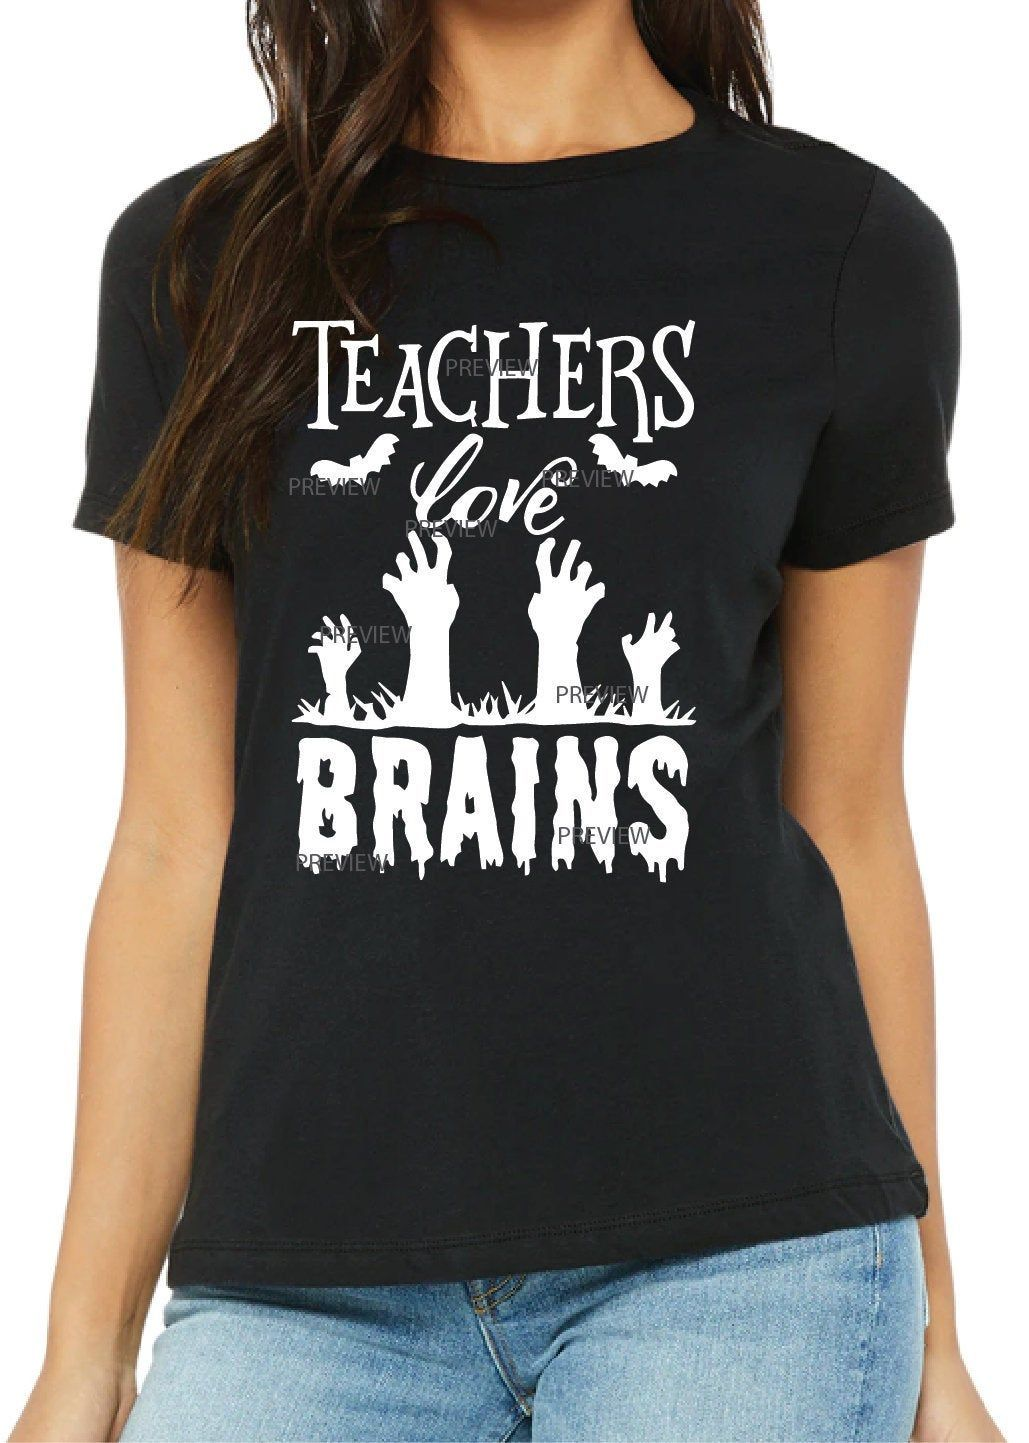 Teachers Love Brains SVG File Fun christmas shirts, Kc